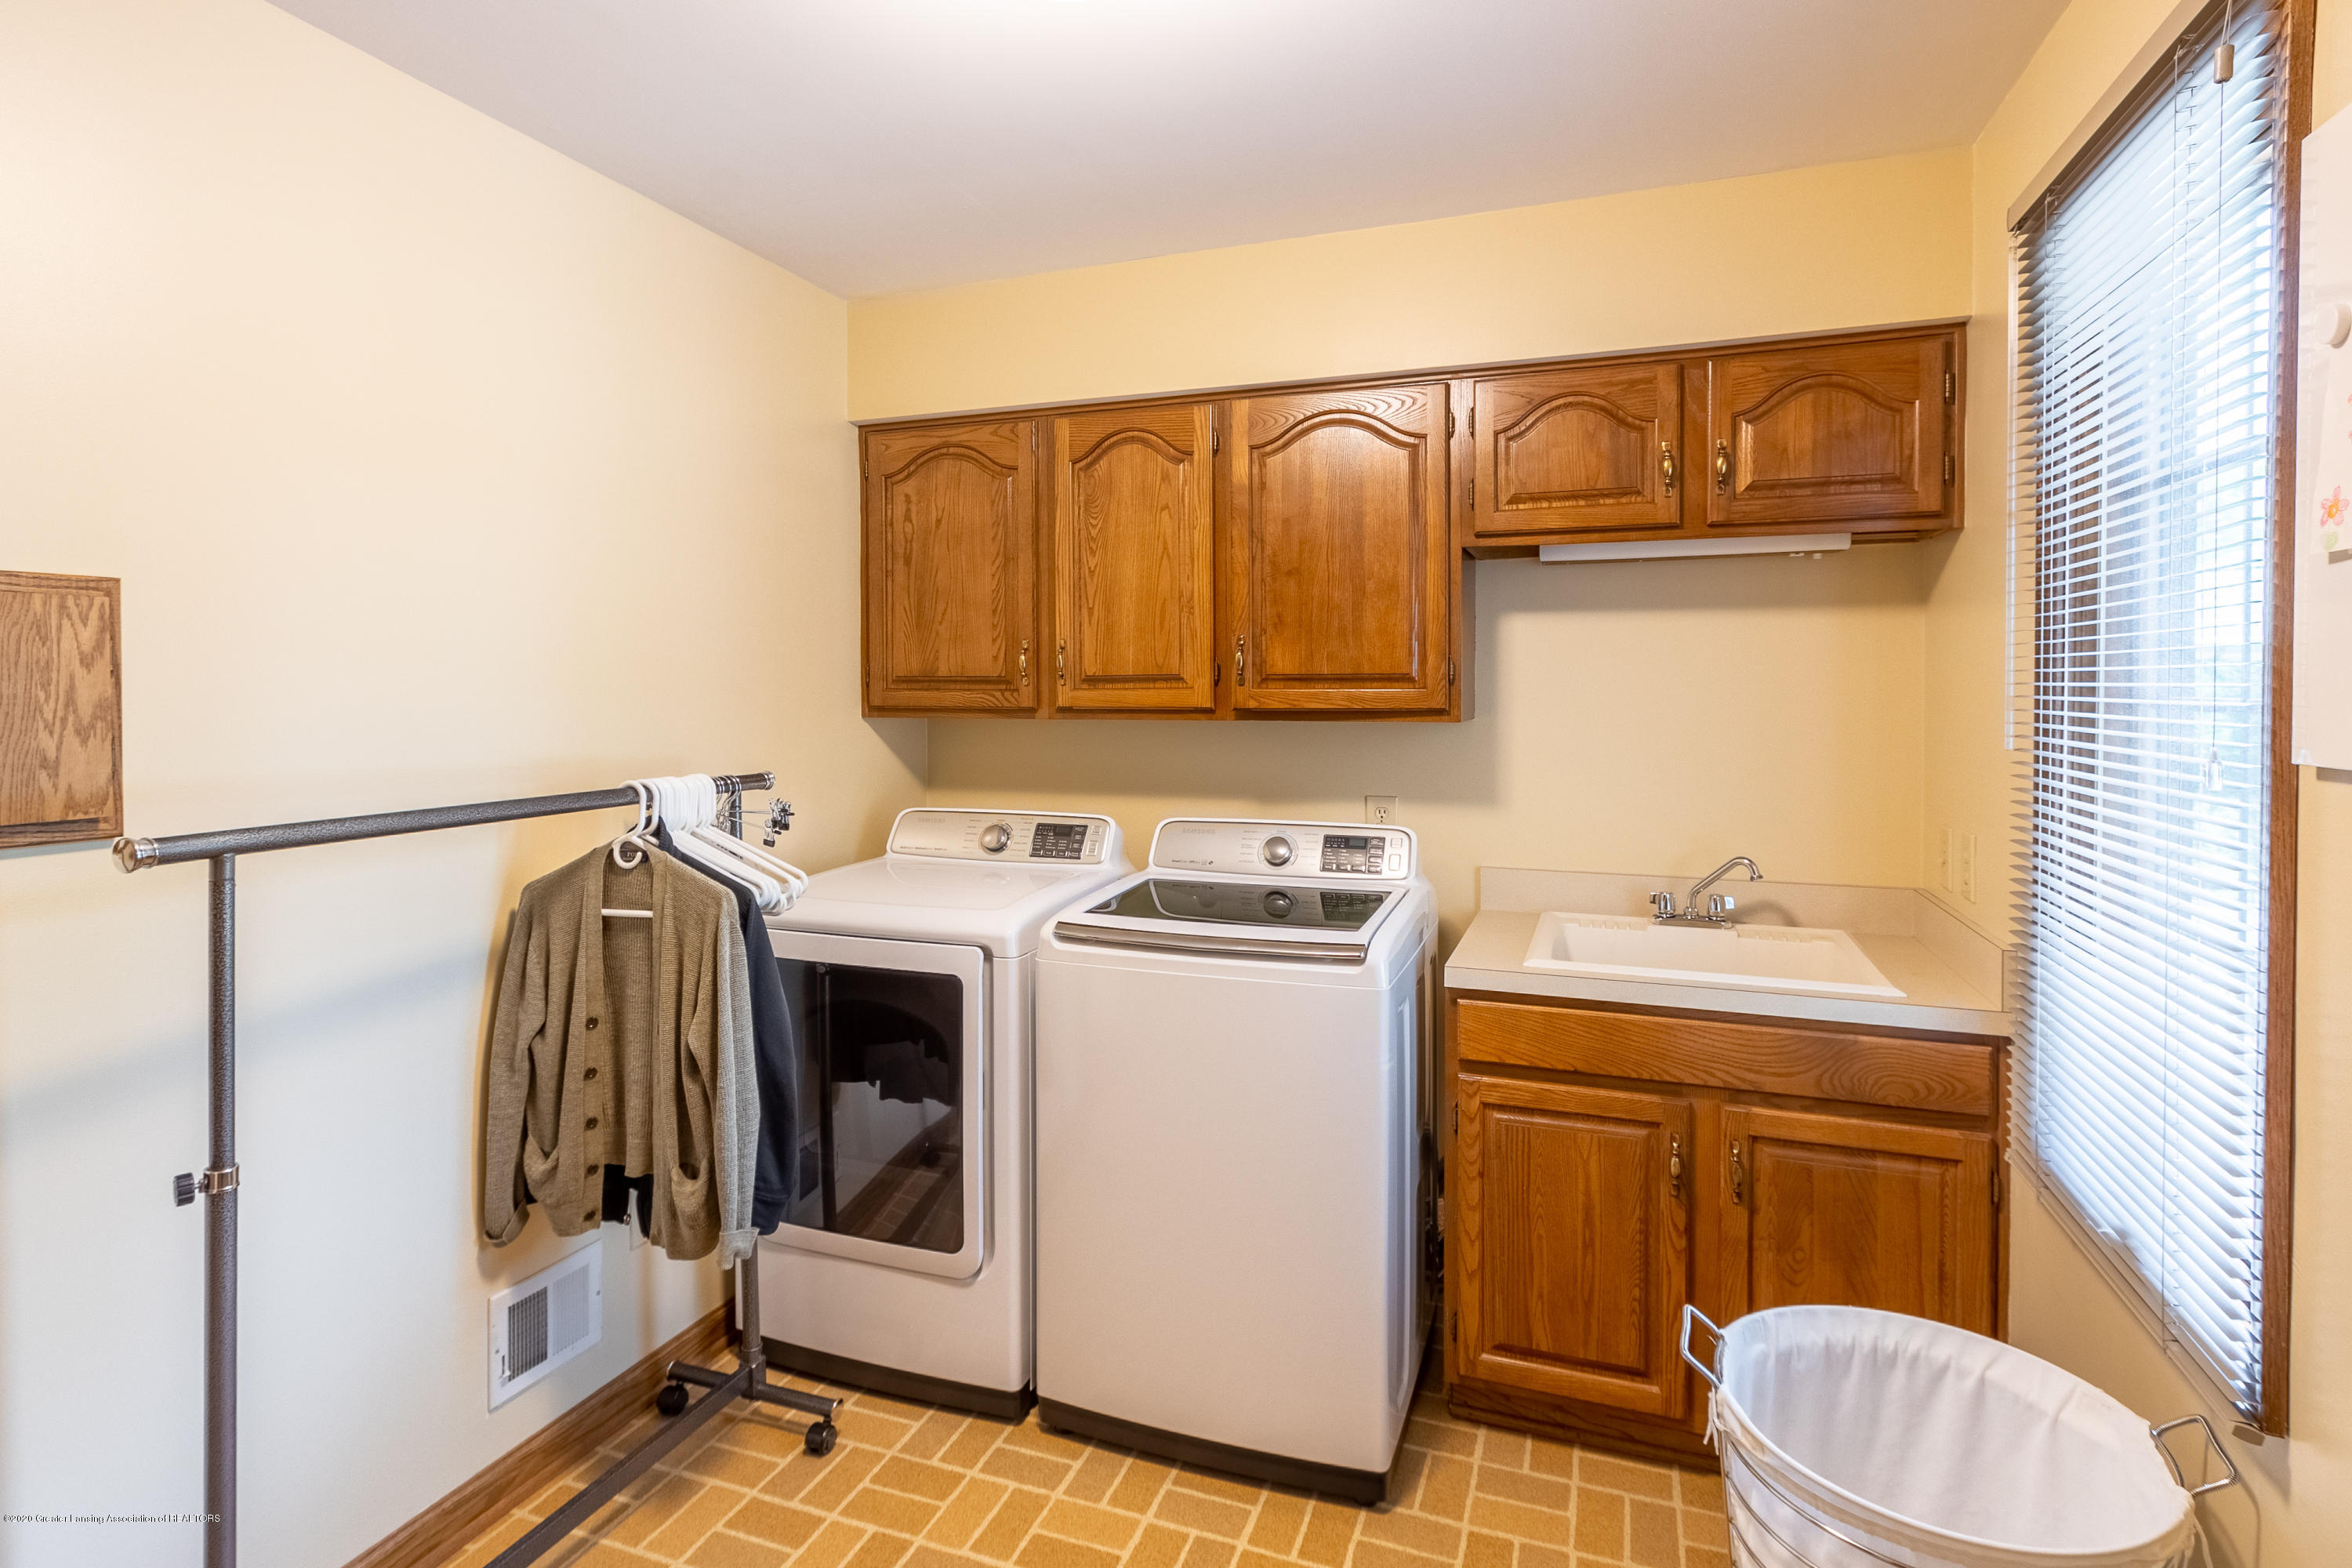 3892 Crooked Creek Rd - Laundry Room - 38